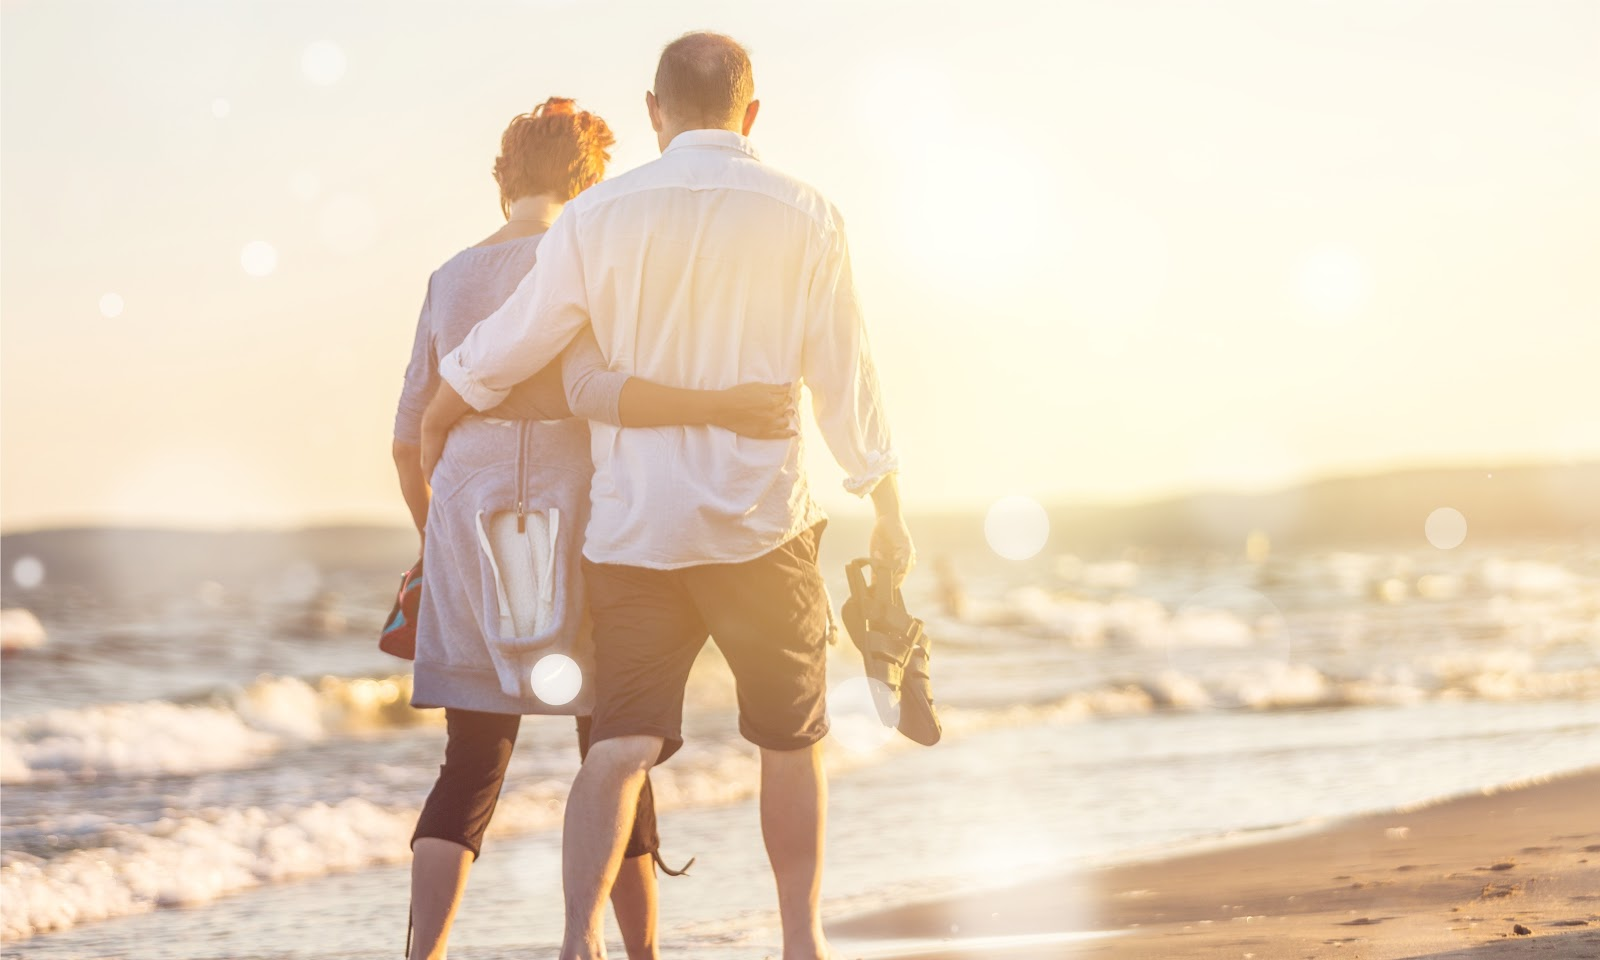 Elderly couple walking and hugging each other while on the seashore